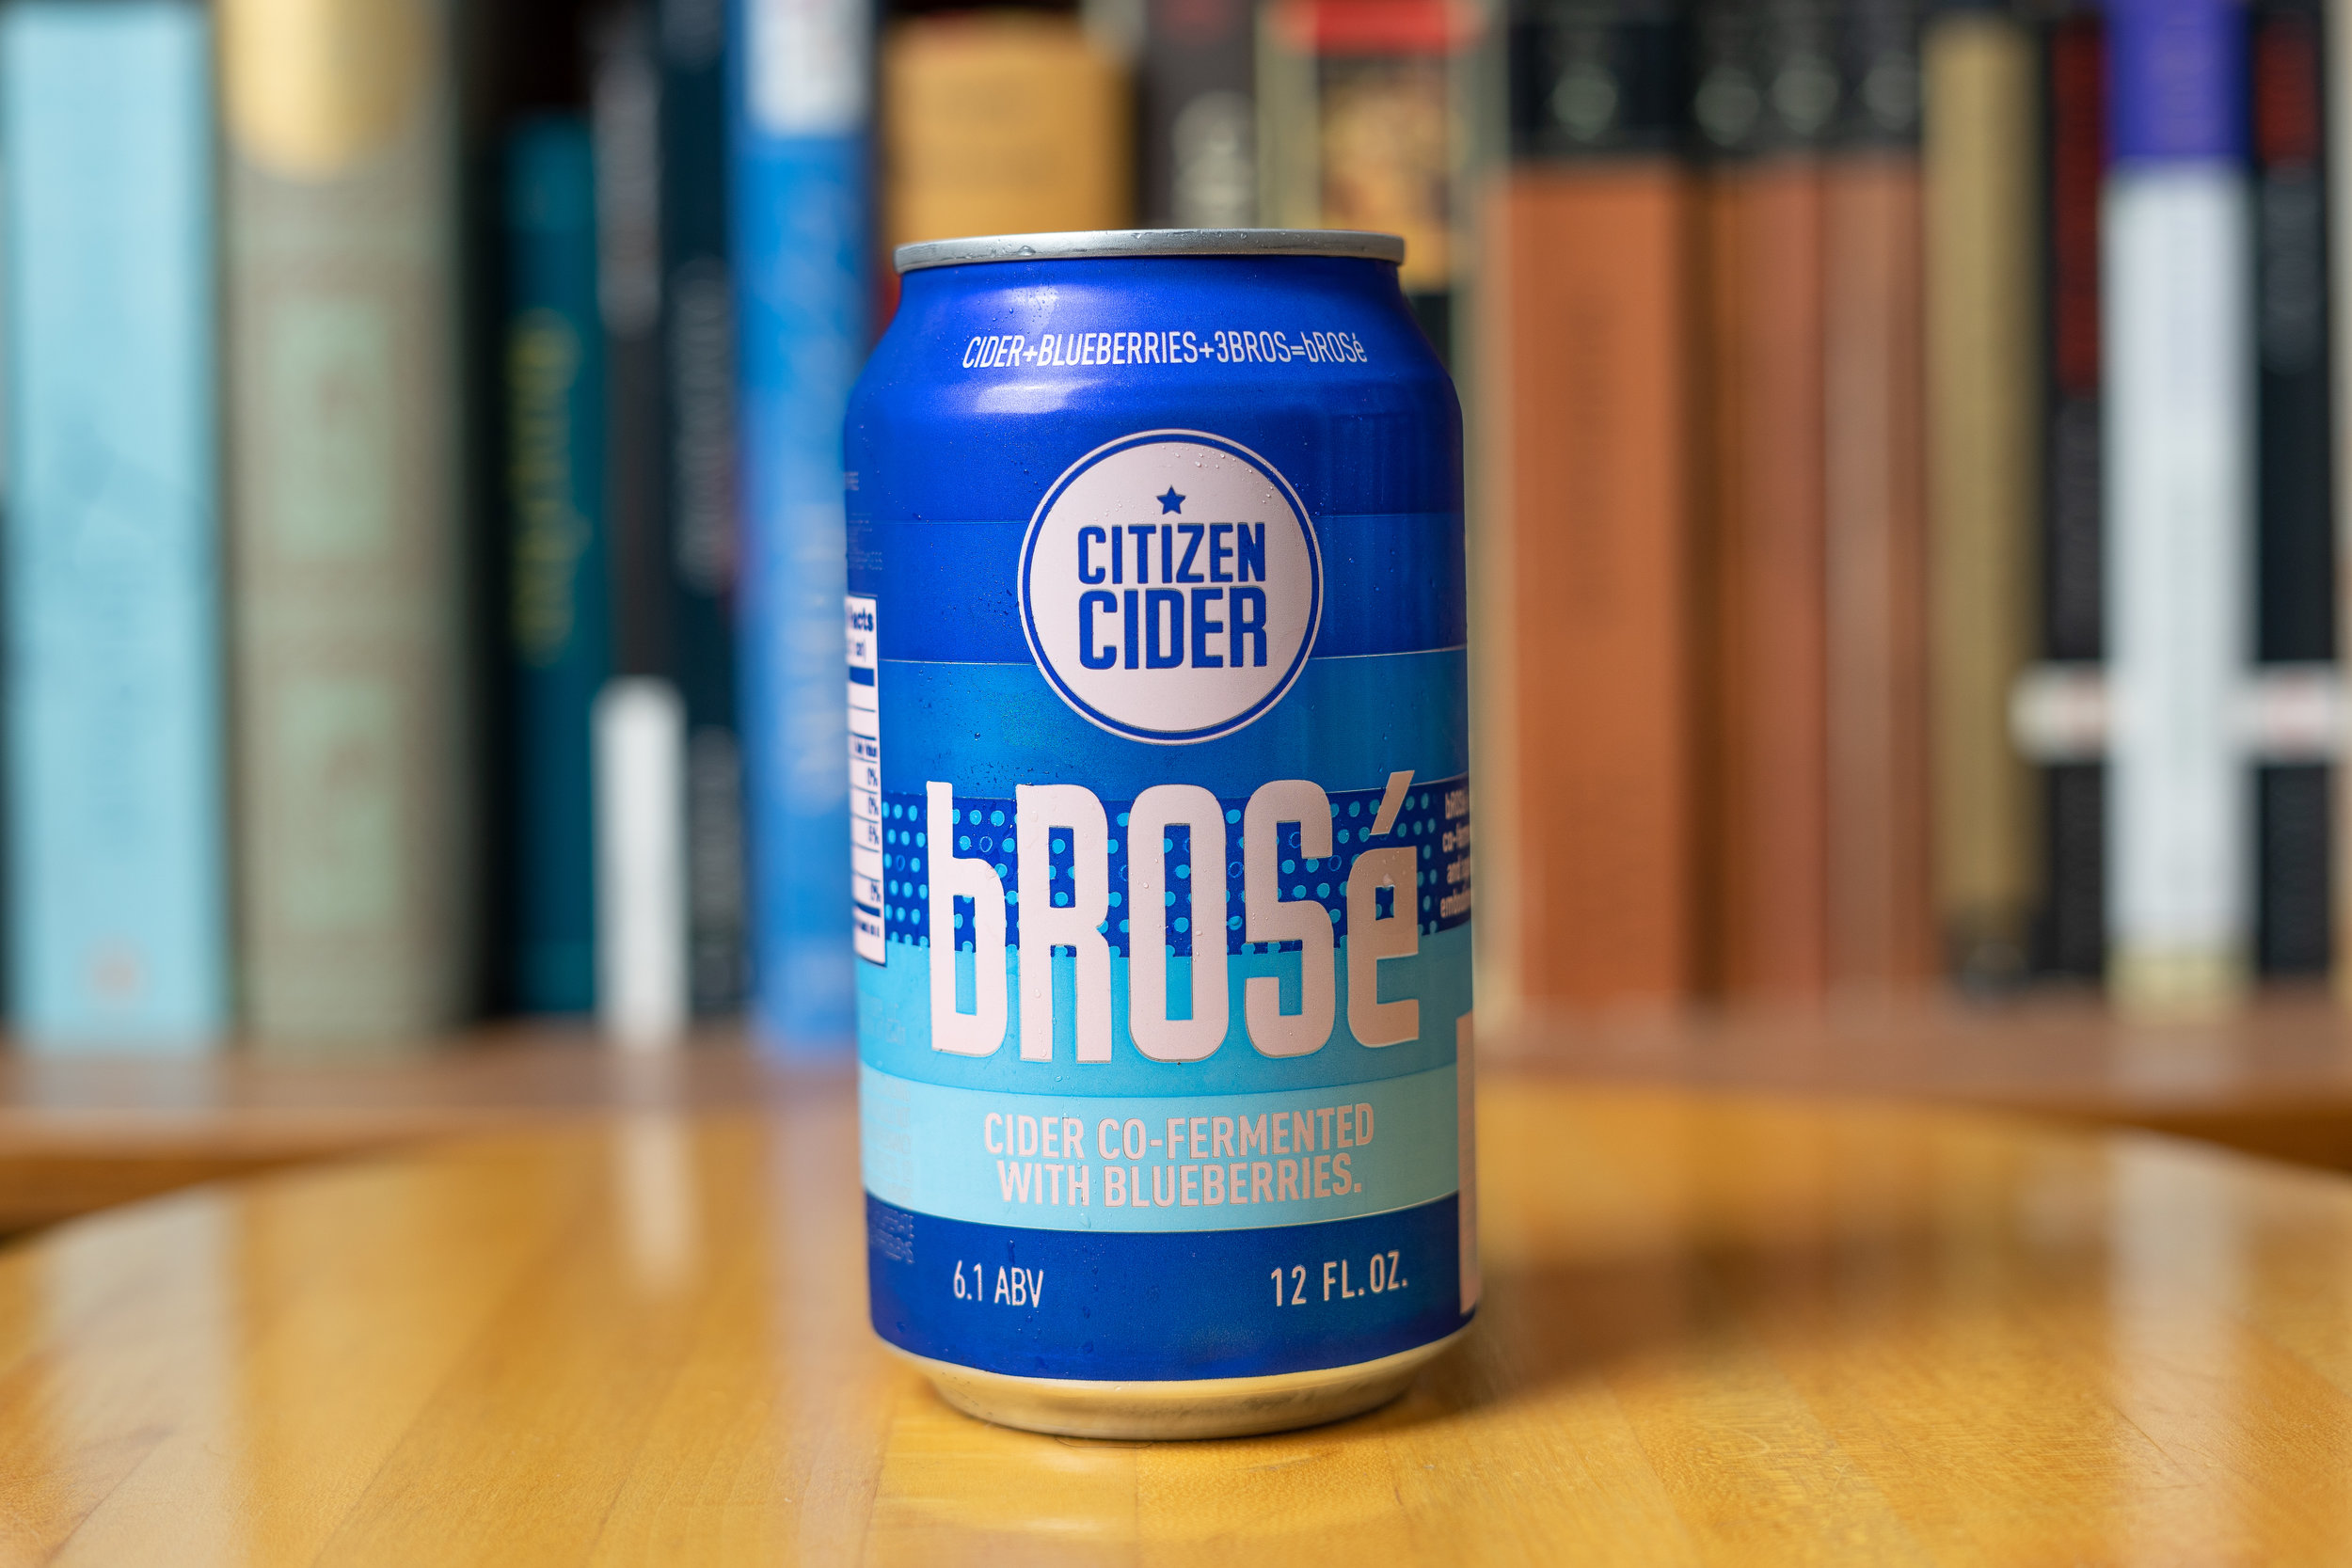 Citizen Cider bRosé